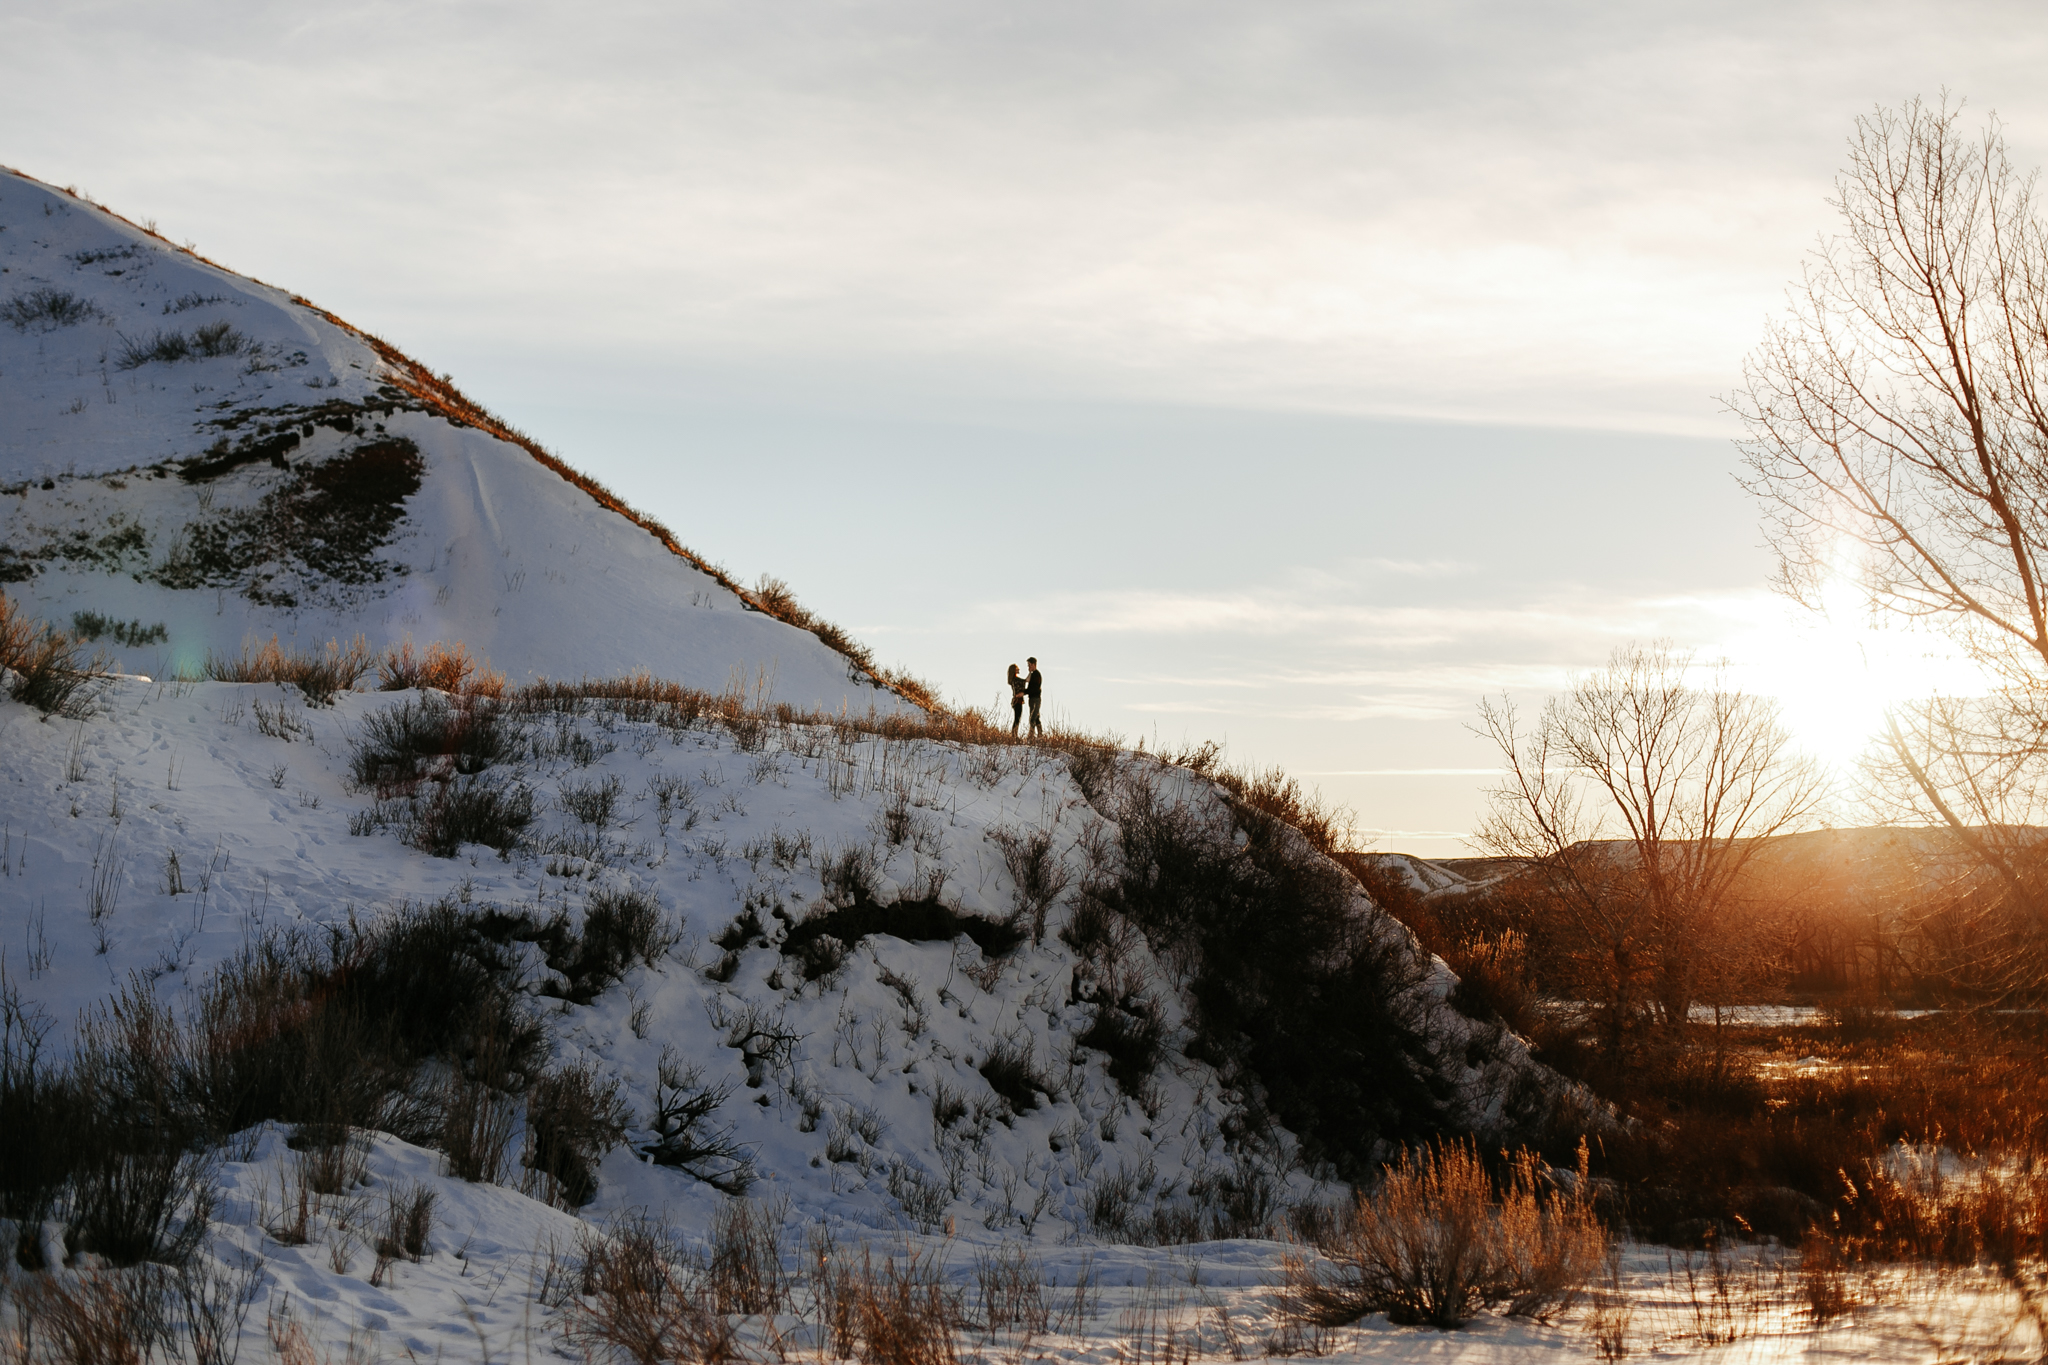 lethbridge-photographer-love-and-be-loved-photography-wedding-engagement-coulees-stuart-lacey-pavan-park-photo-image-picture-27.jpg